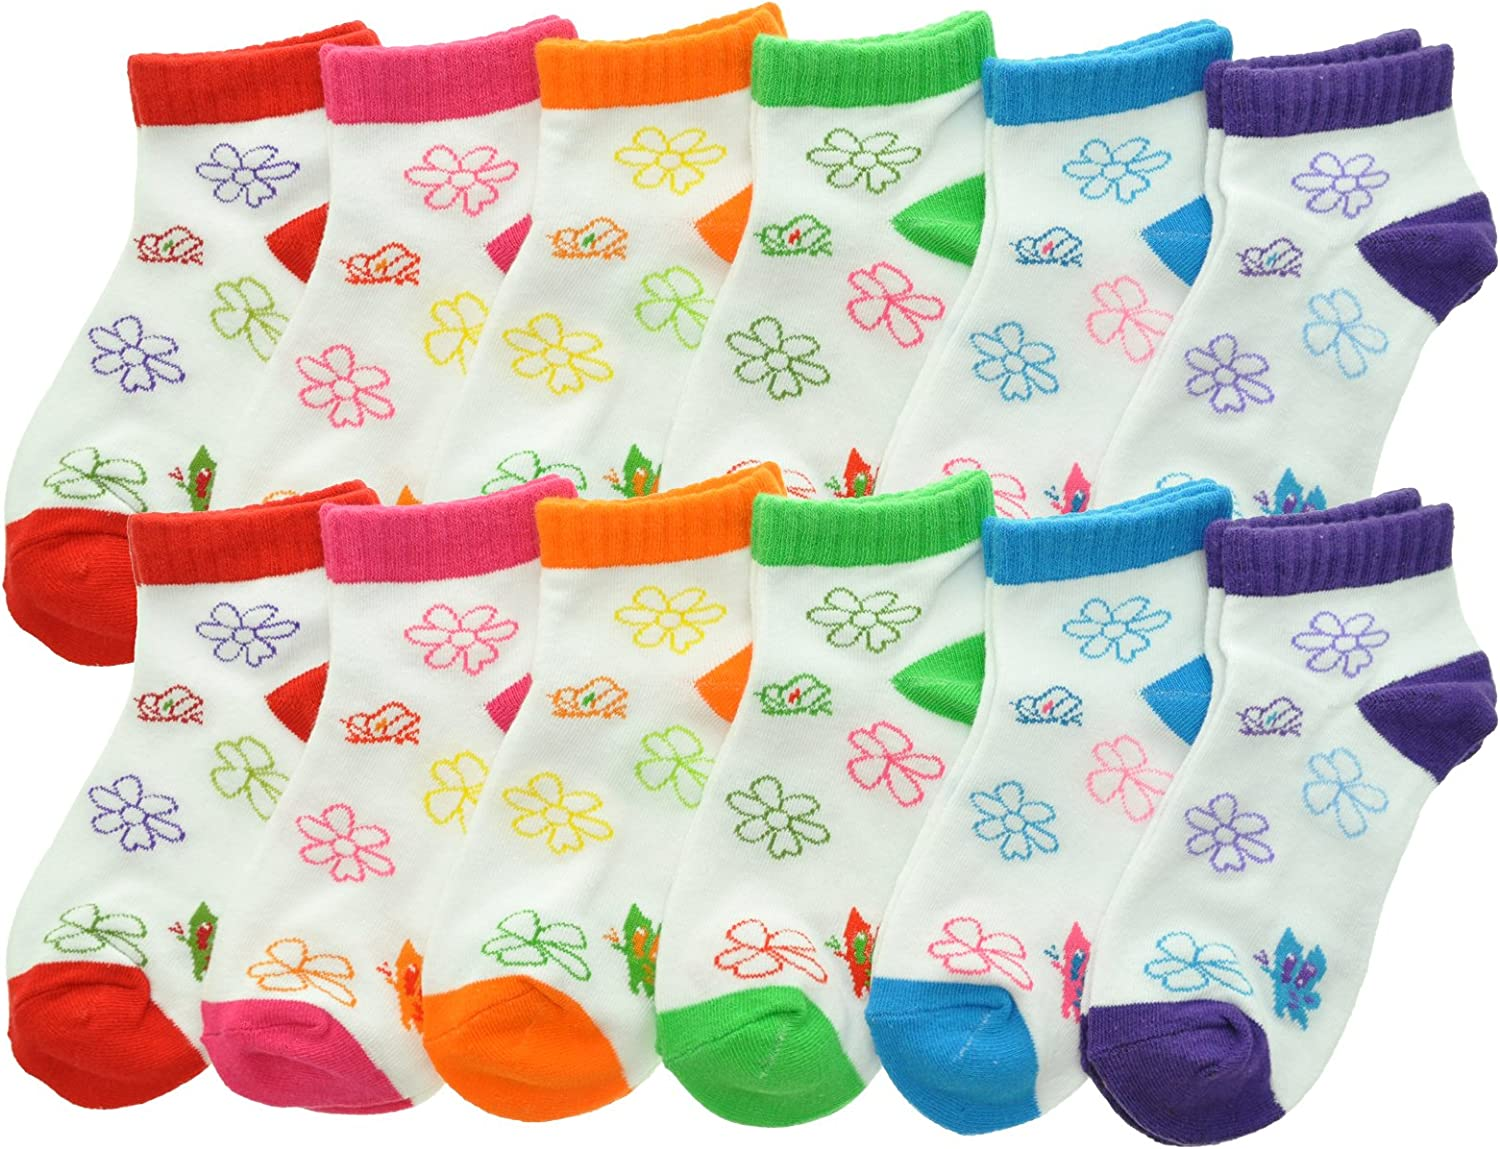 12-Pack Angelina Cotton Variety Low Cut Trainer Socks